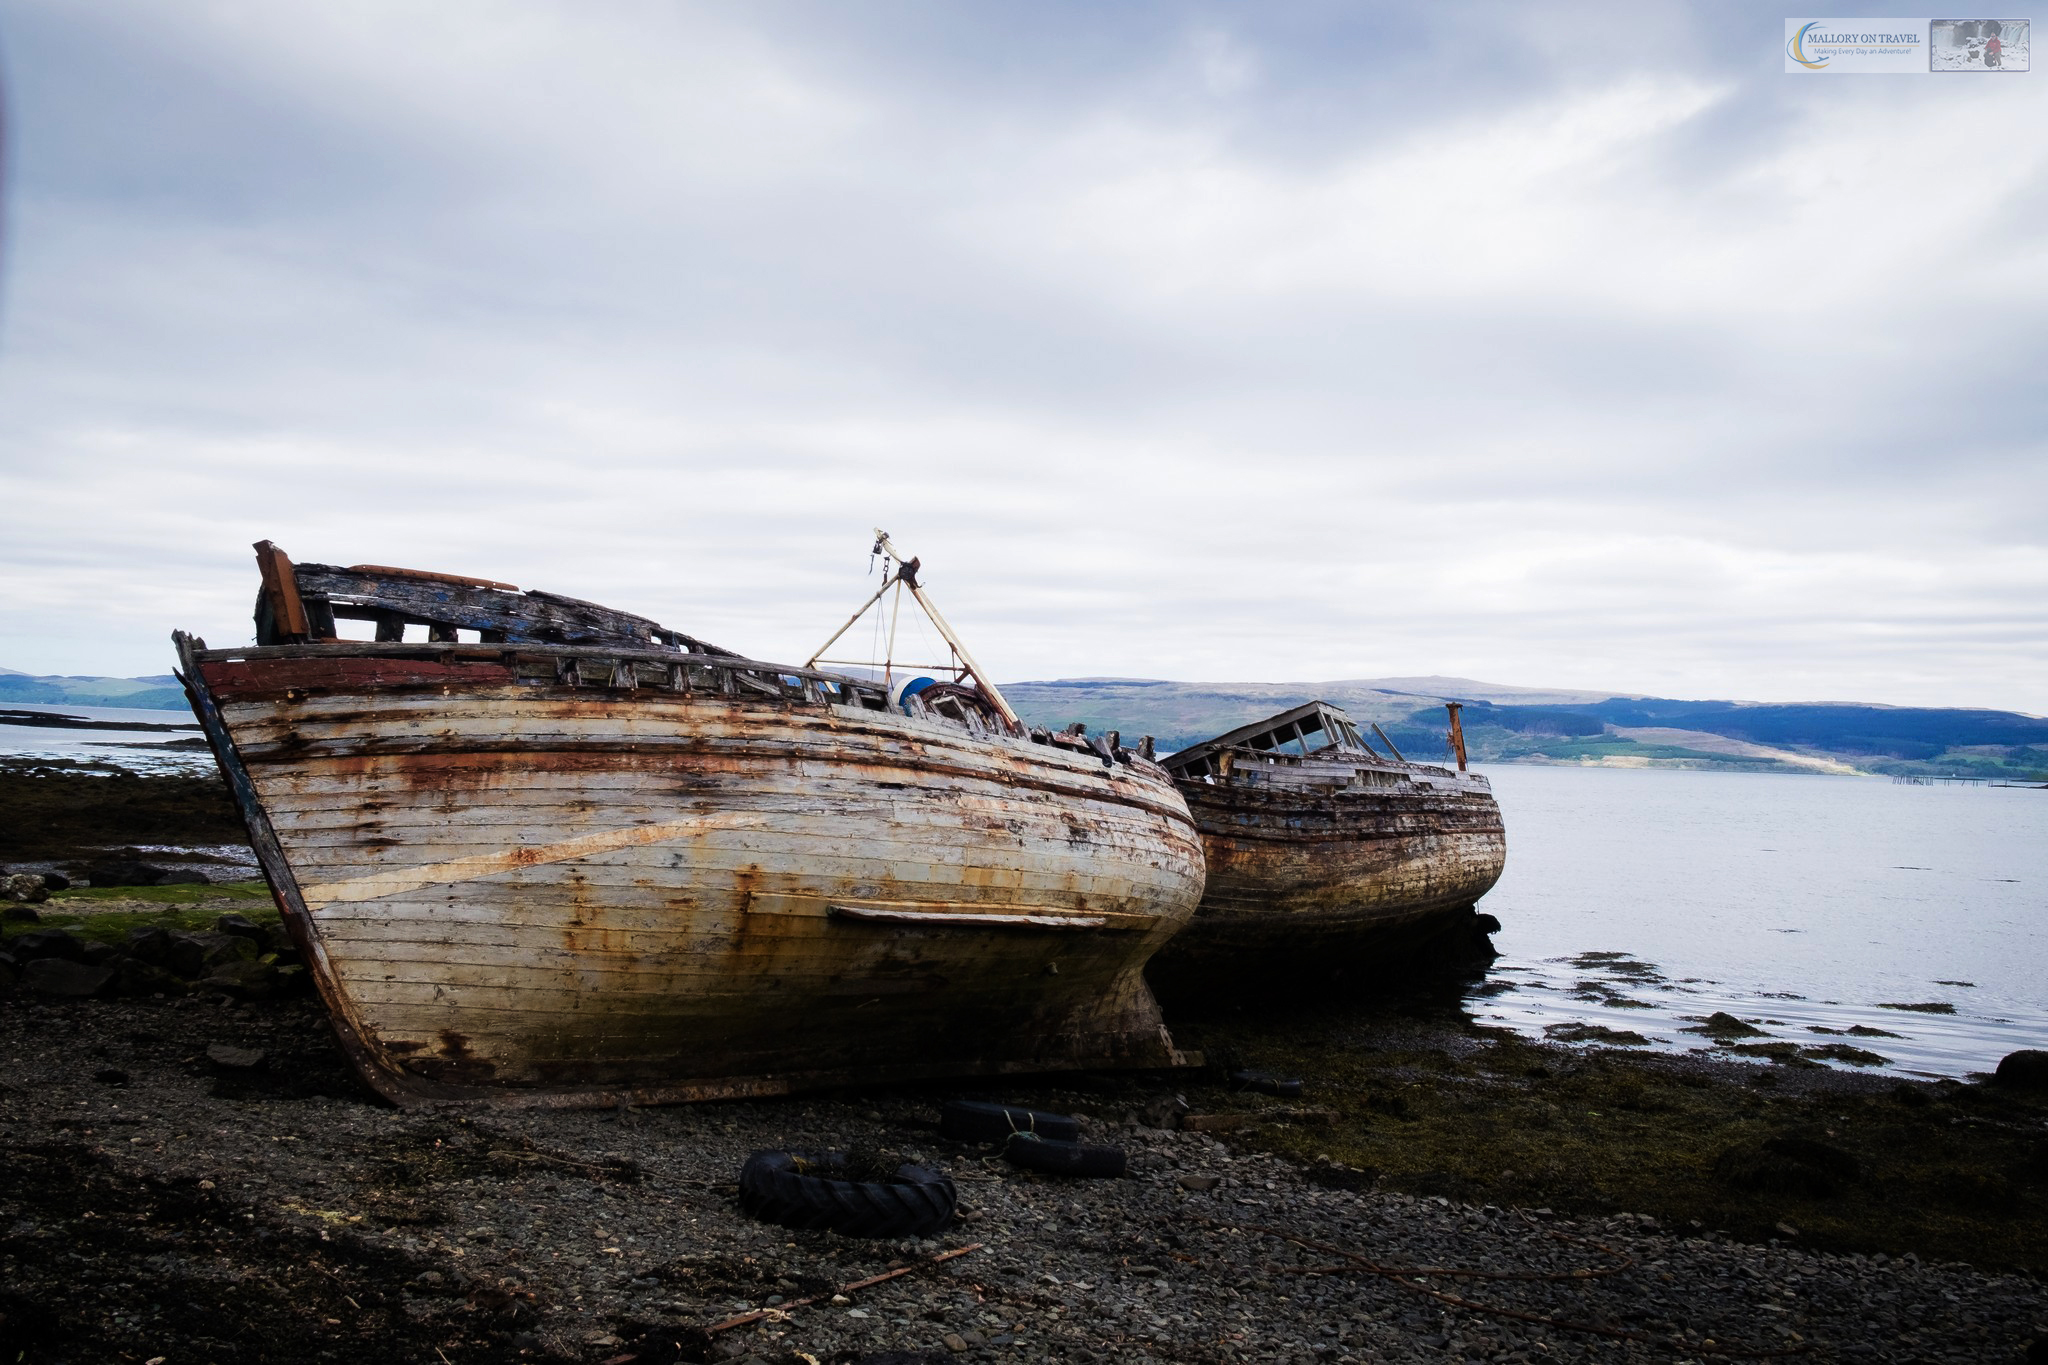 Stranded and deserted hulls of boats on the Isle of Mull, the Inner Hebrides in the SCottish highlands and islands on Mallory on Travel adventure travel, photography, travel iain-mallory_scotland3647